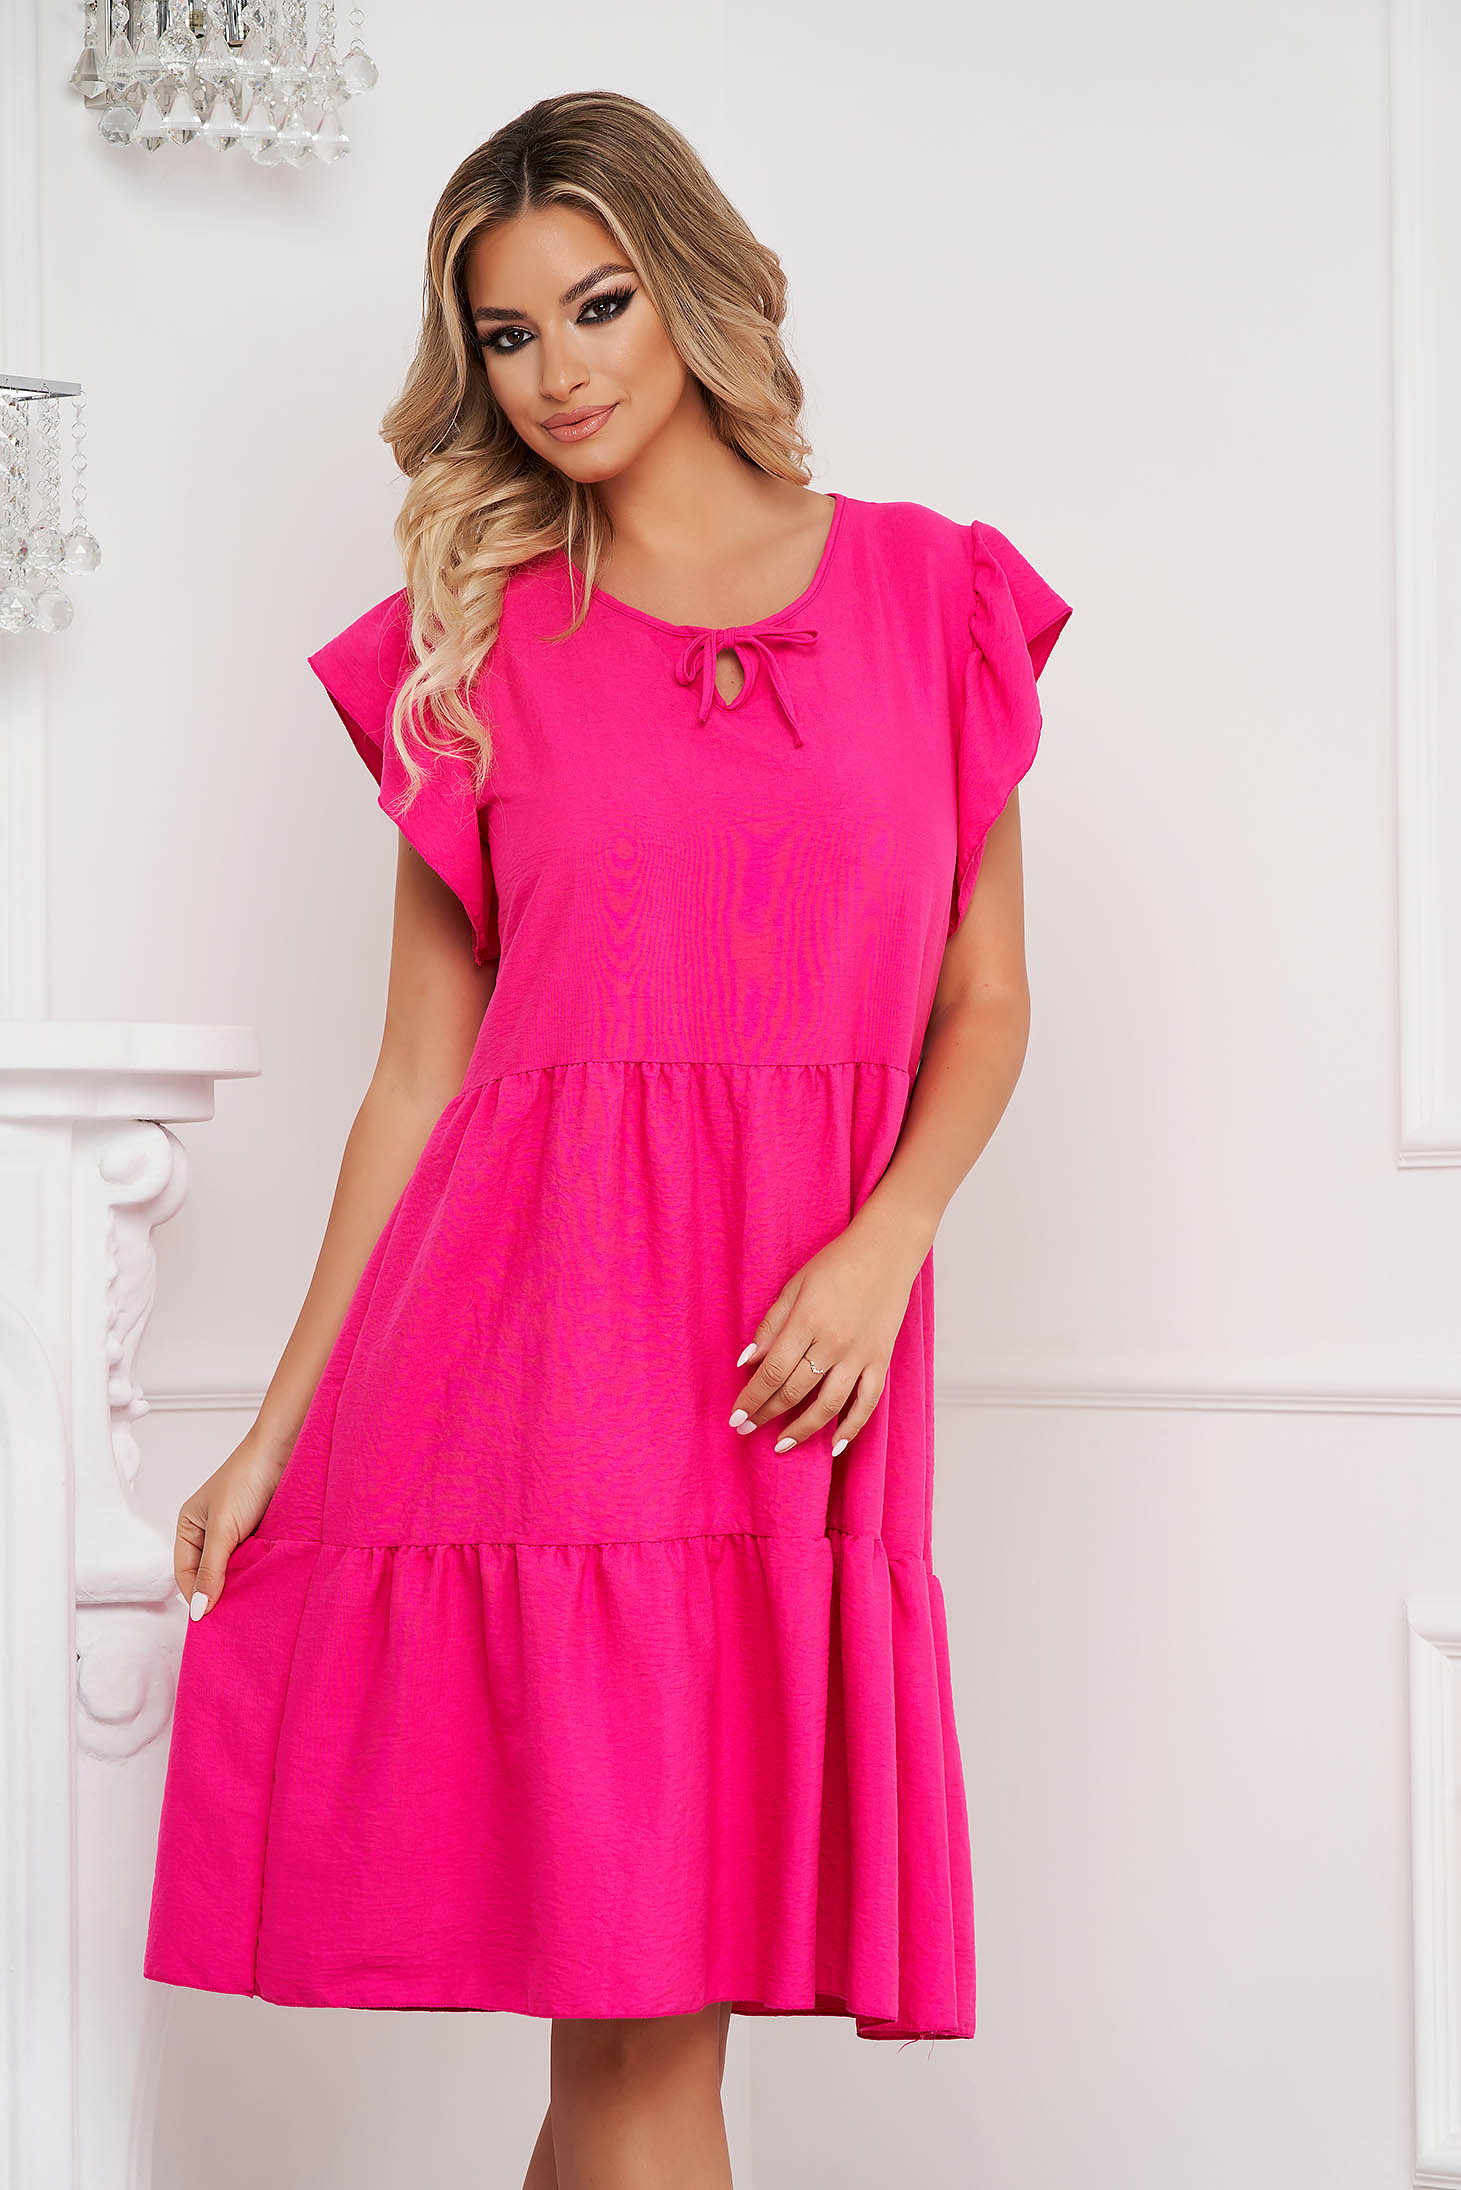 Fuchsia dress midi loose fit airy fabric with ruffle details